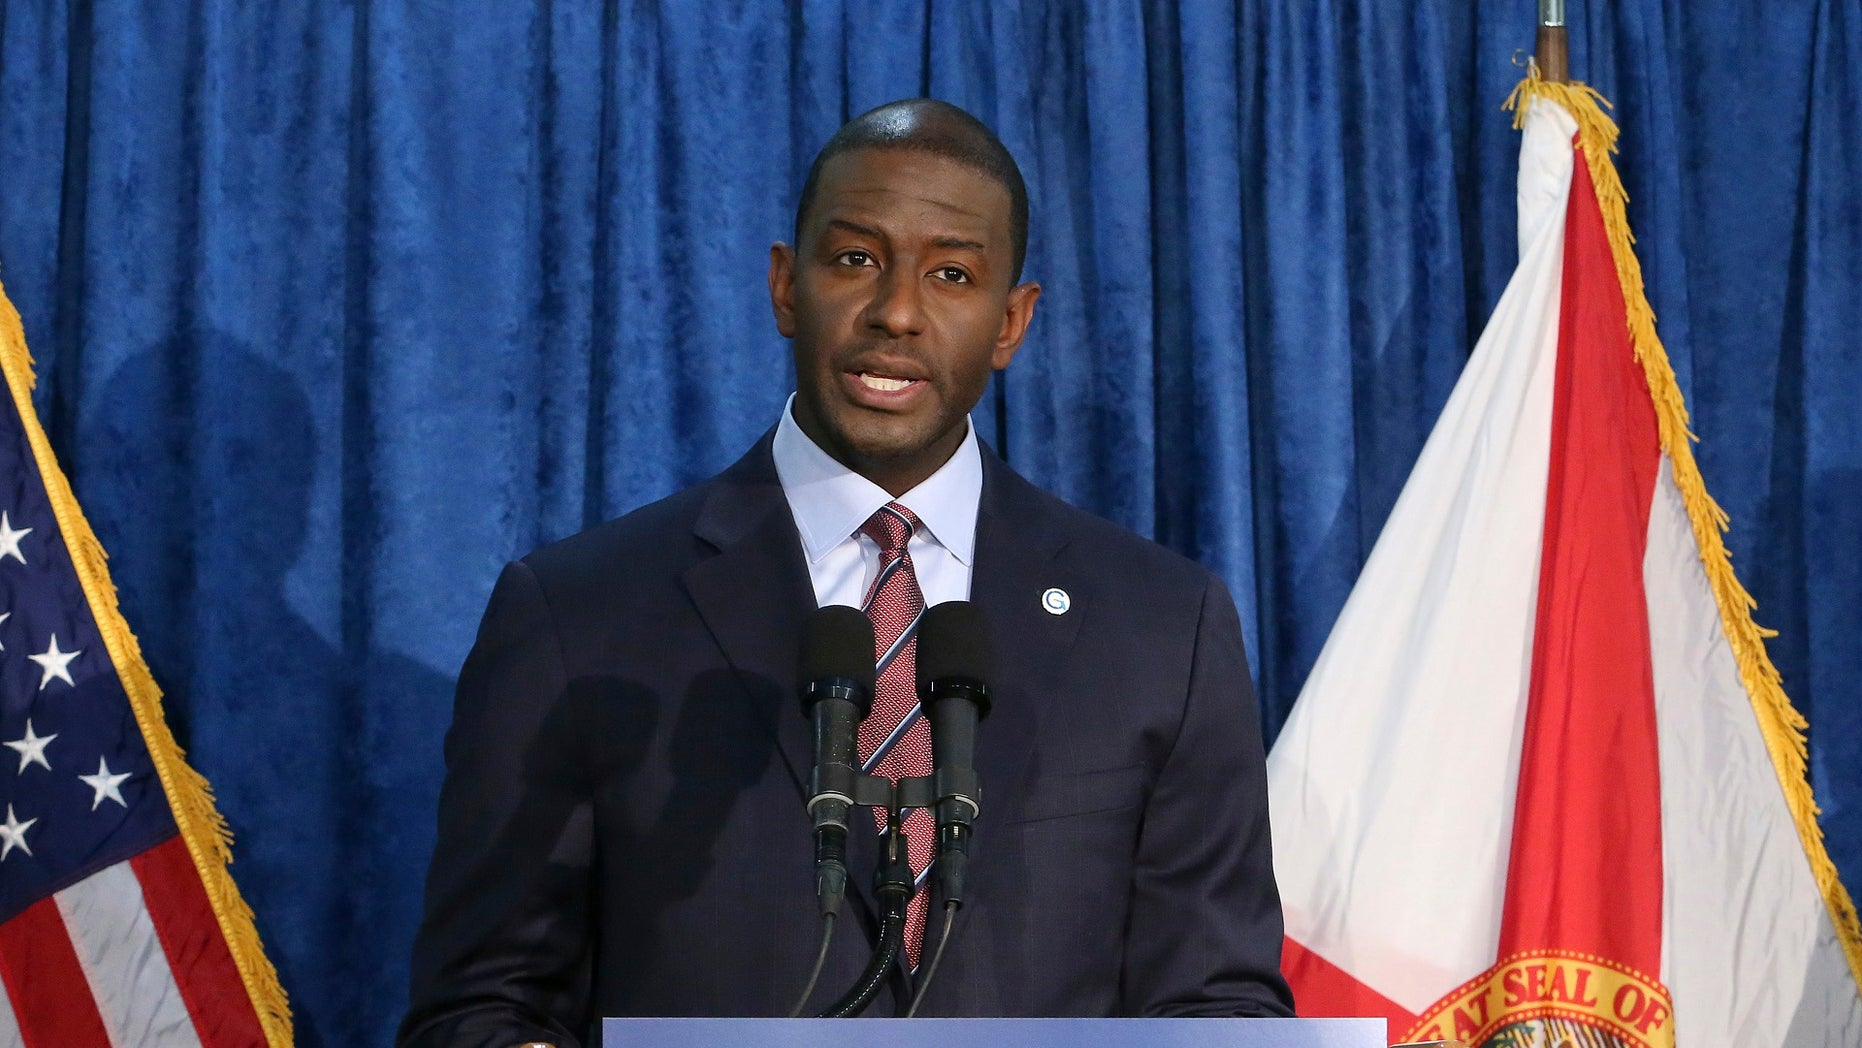 Andrew Gillum Concedes Again in Florida Governor's Race